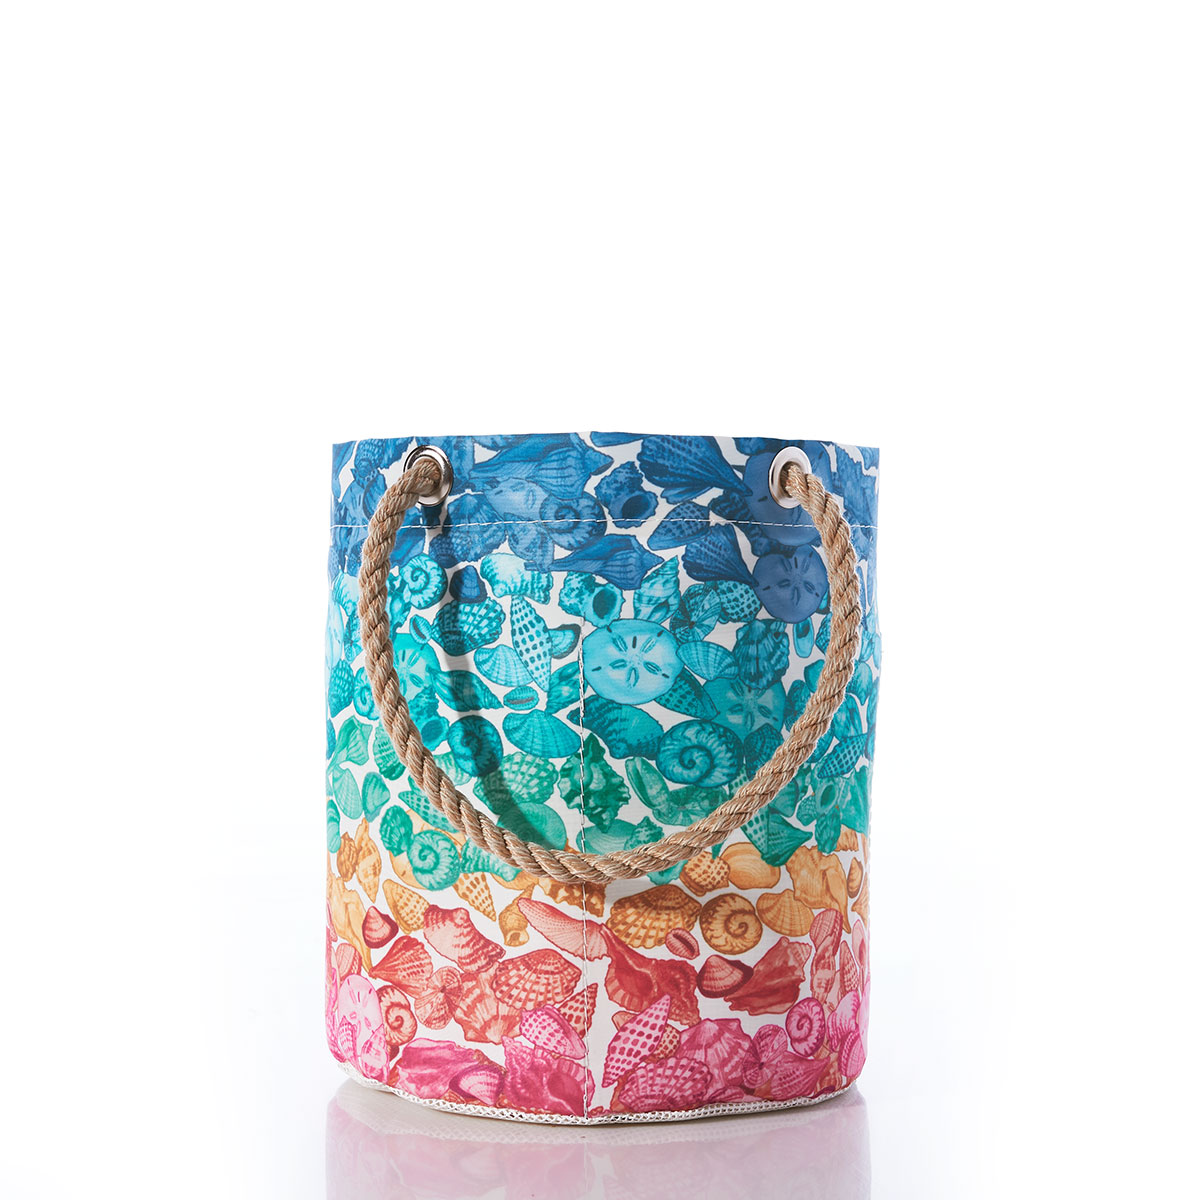 a recycled sail cloth beachcomber bucket with hemp handles features rows of a variety of seashells in rainbow colors, from top down blues, teals, sea greens, oranges and pinks